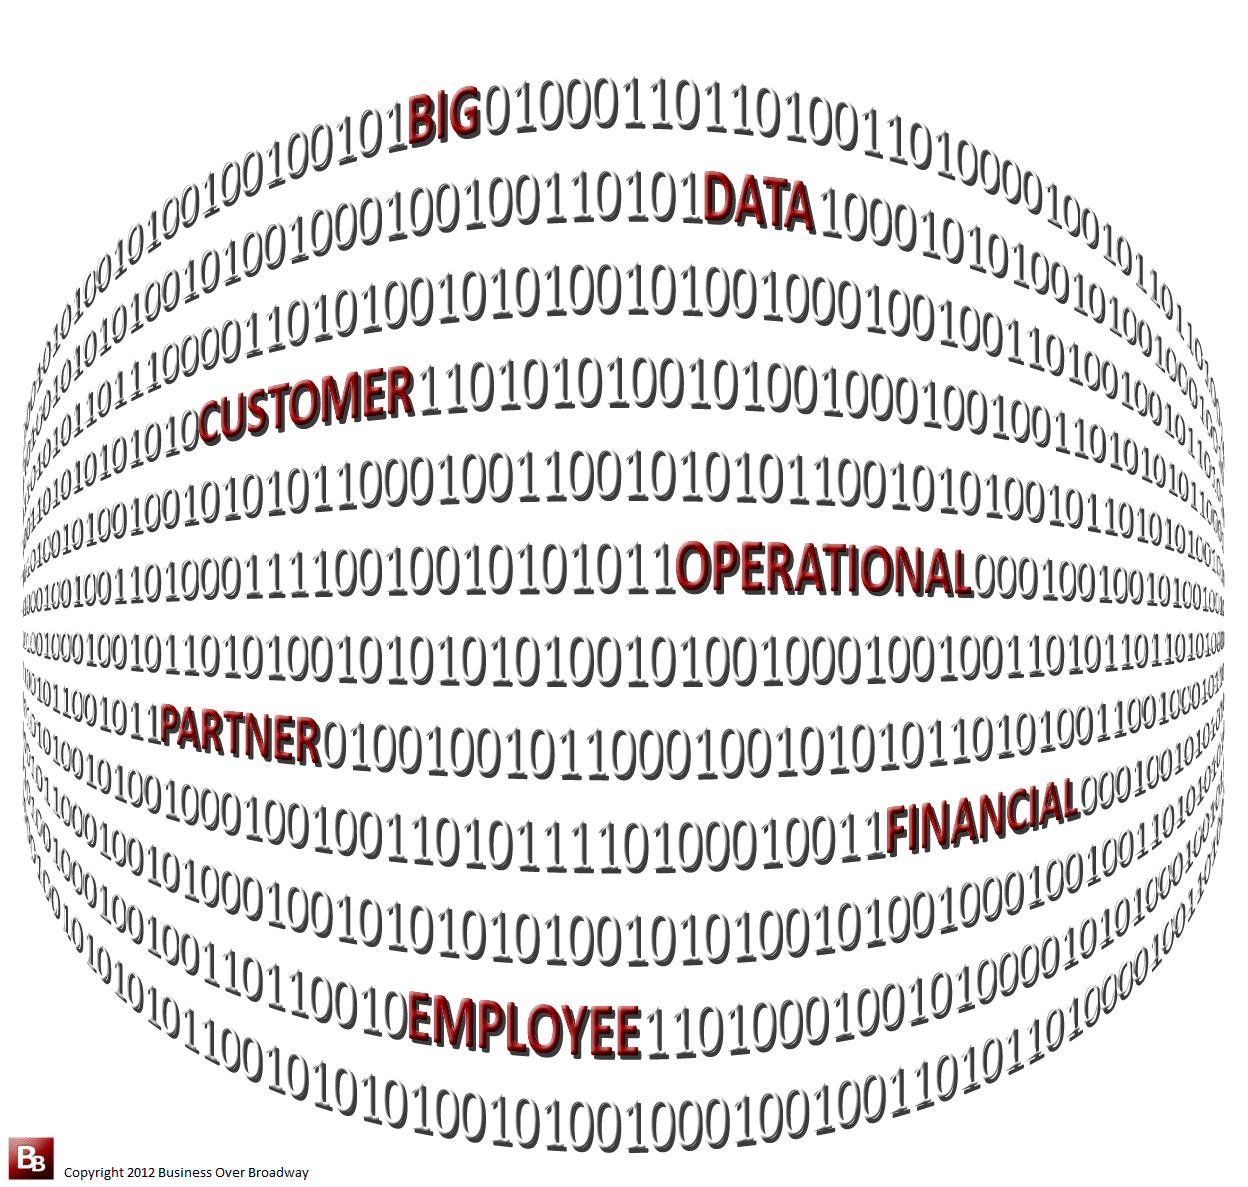 http://businessoverbroadway.com/big-data-customer-centric-approach